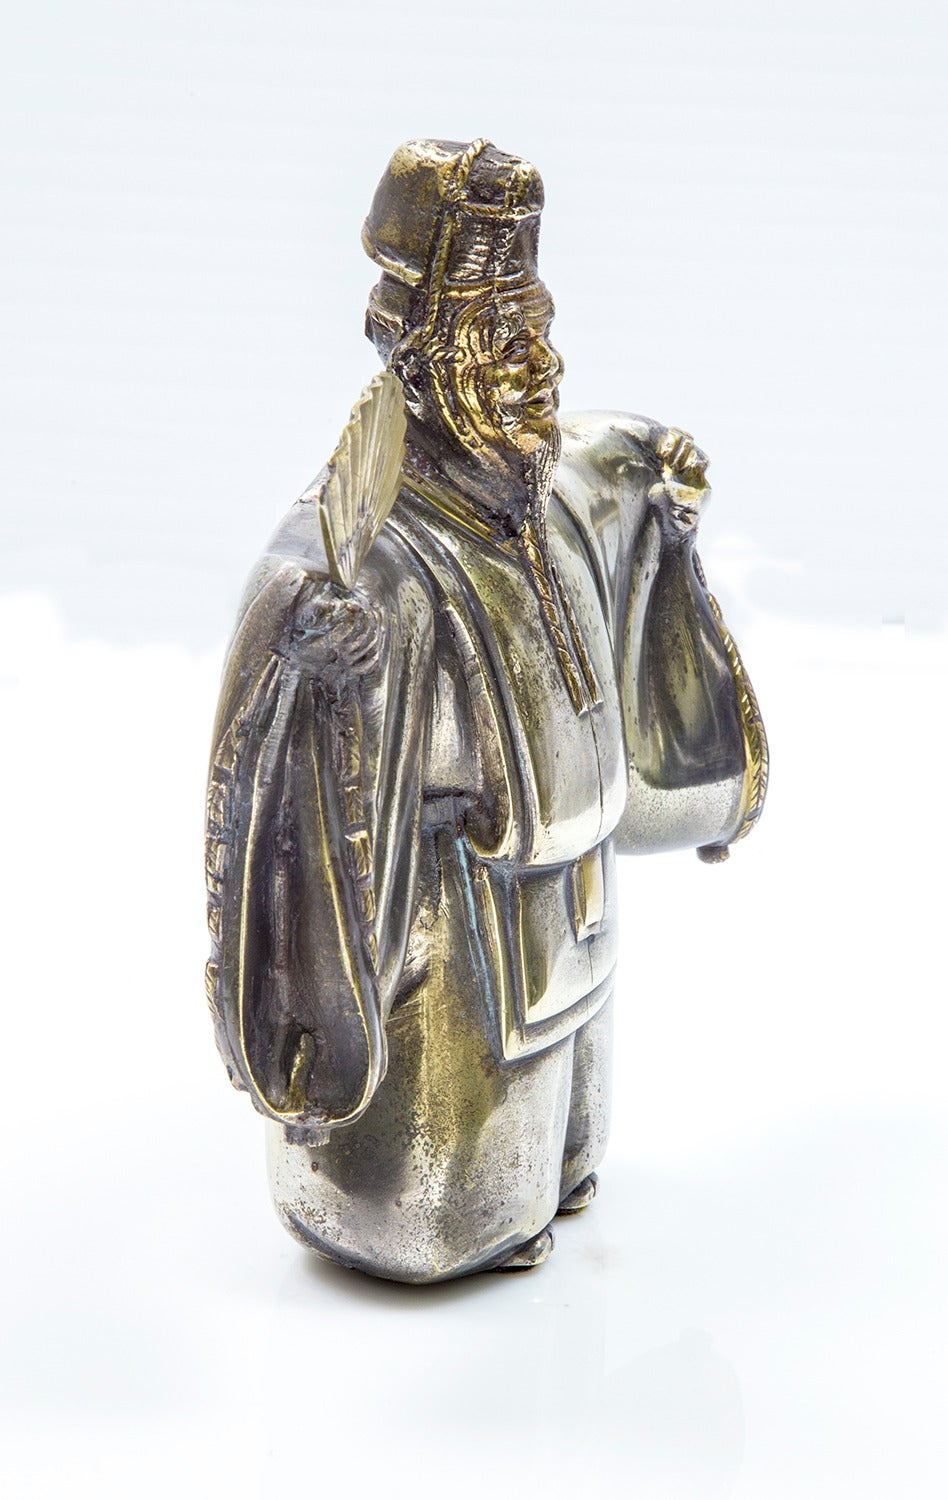 Mid-late 20th century bronze sculpture of the traditional Japanese theater, modeled as a Japanese classical gentleman dancer holding a fan, wearing a robe with embroidered trim in relief, gilt accents, unsigned. Measures: 7.5